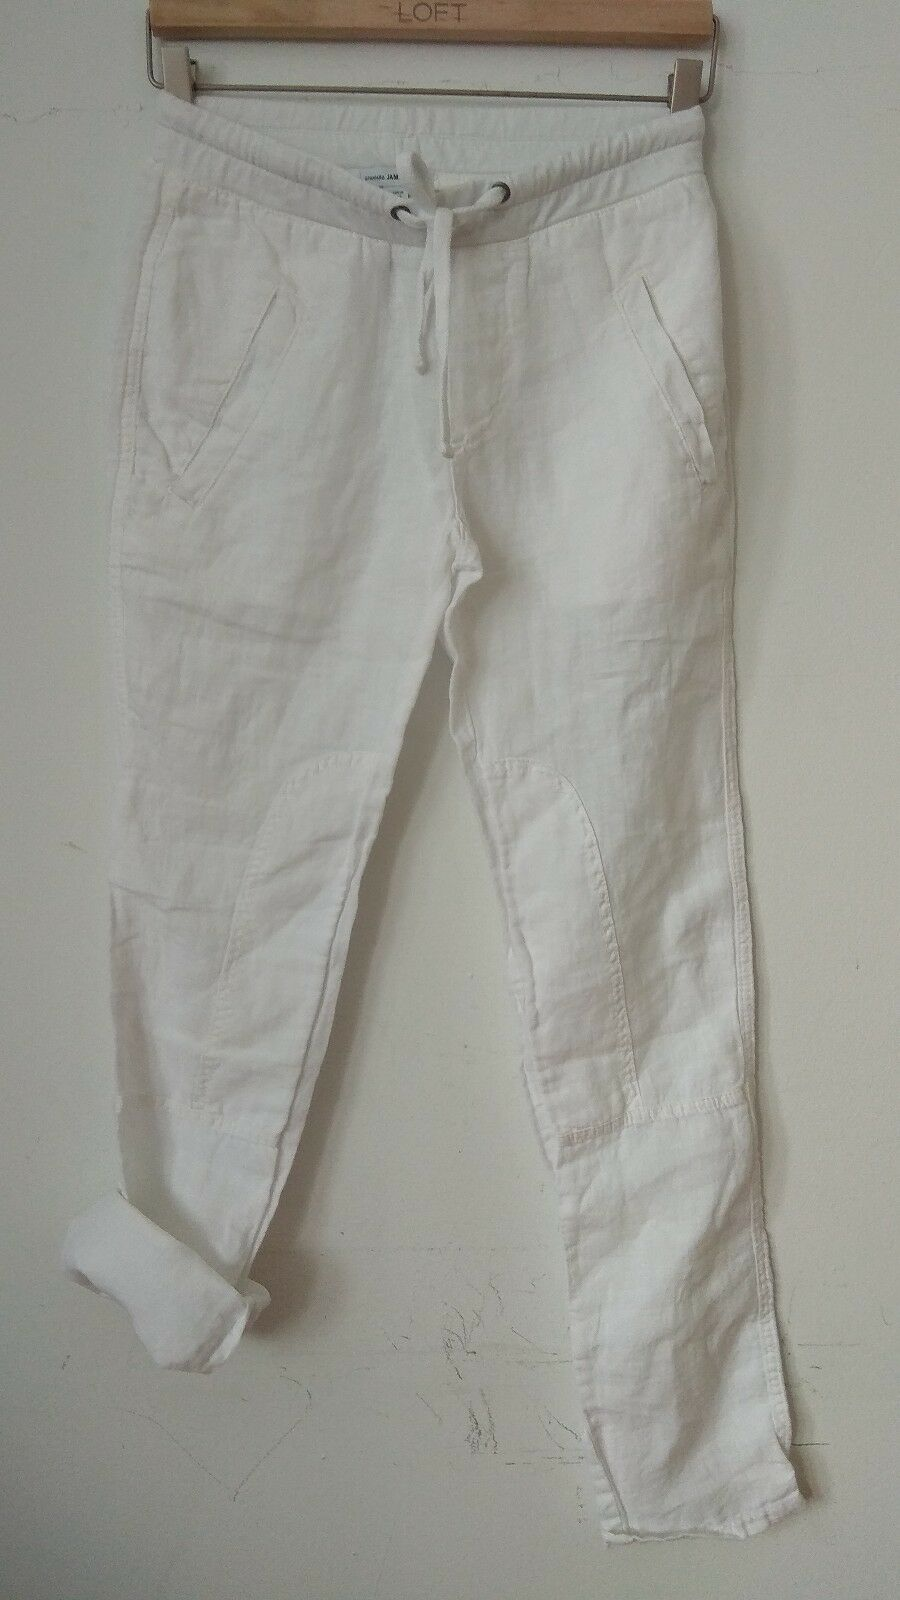 NWOT James Perse Linen Drawstring Pants, Sizes 0